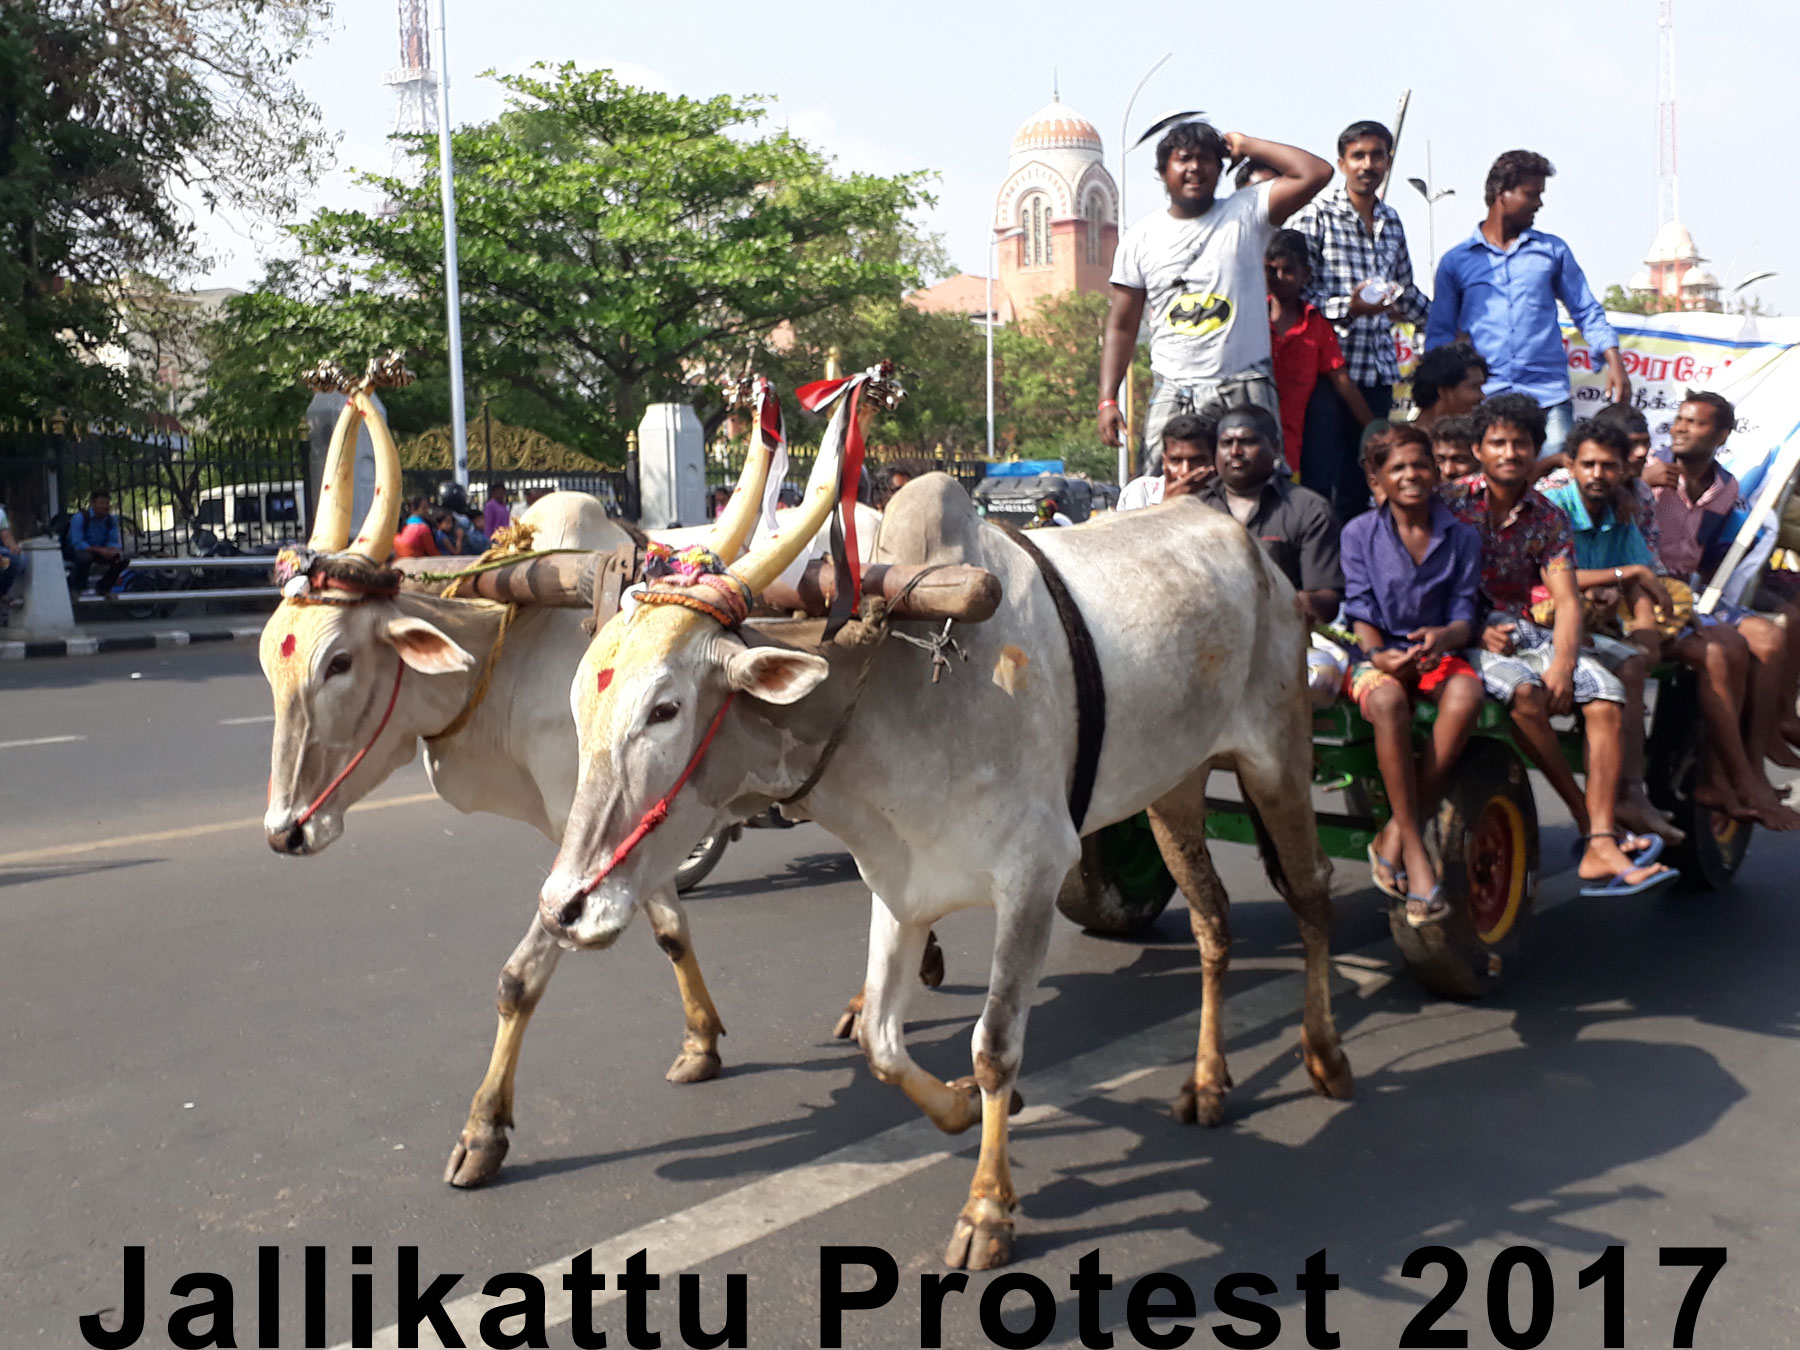 bullock cart at Marina beach, during Jallikattu festival sport protest